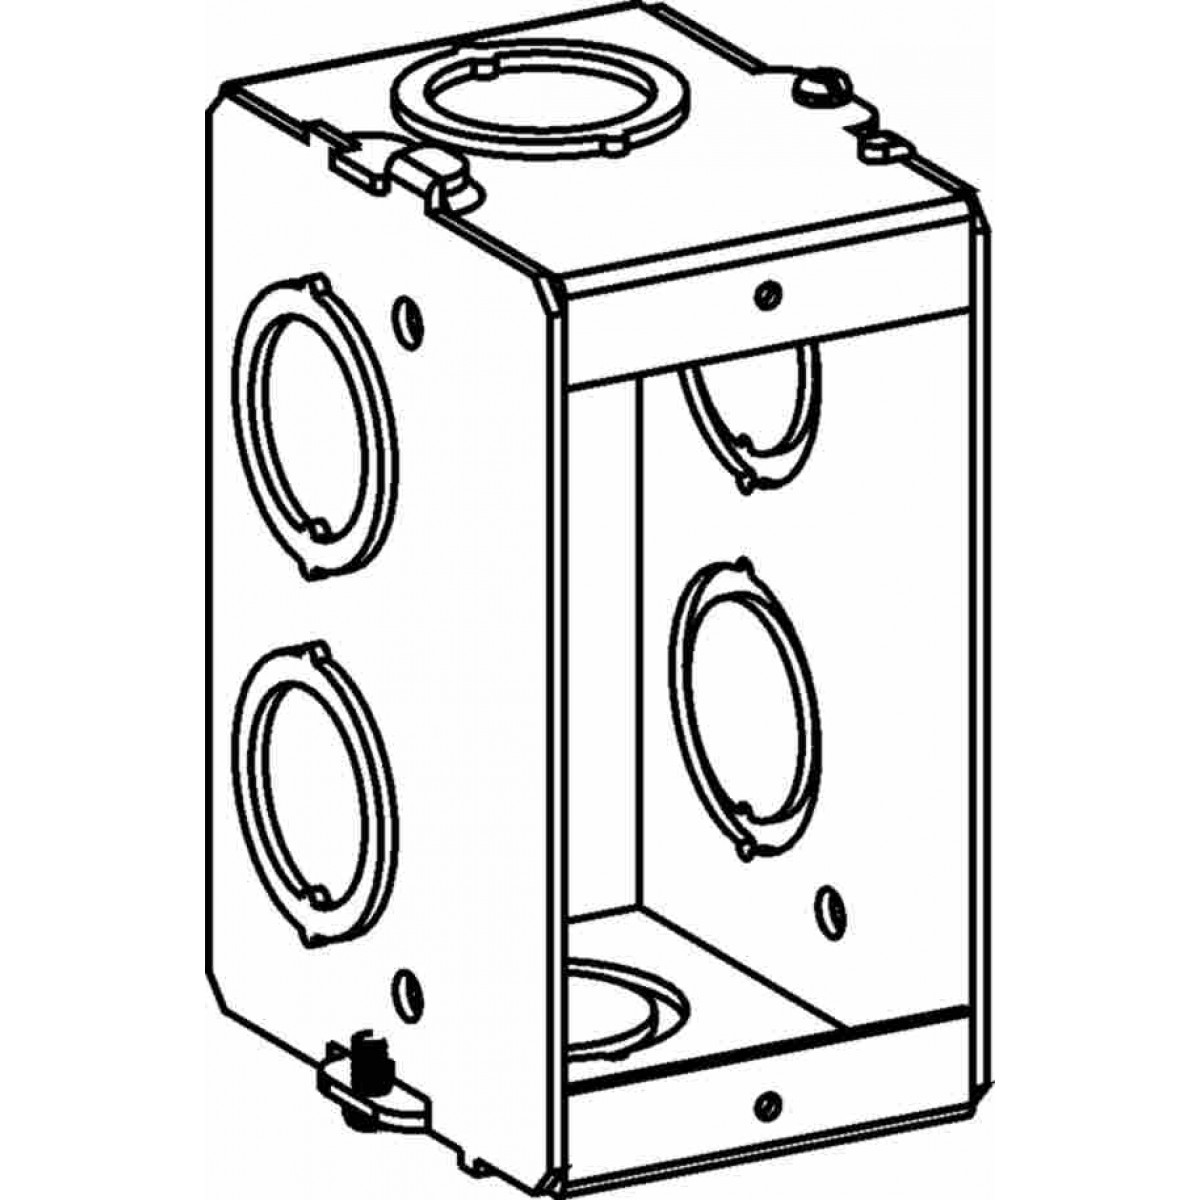 msbg-1 - masonry boxes - electrical junction boxes